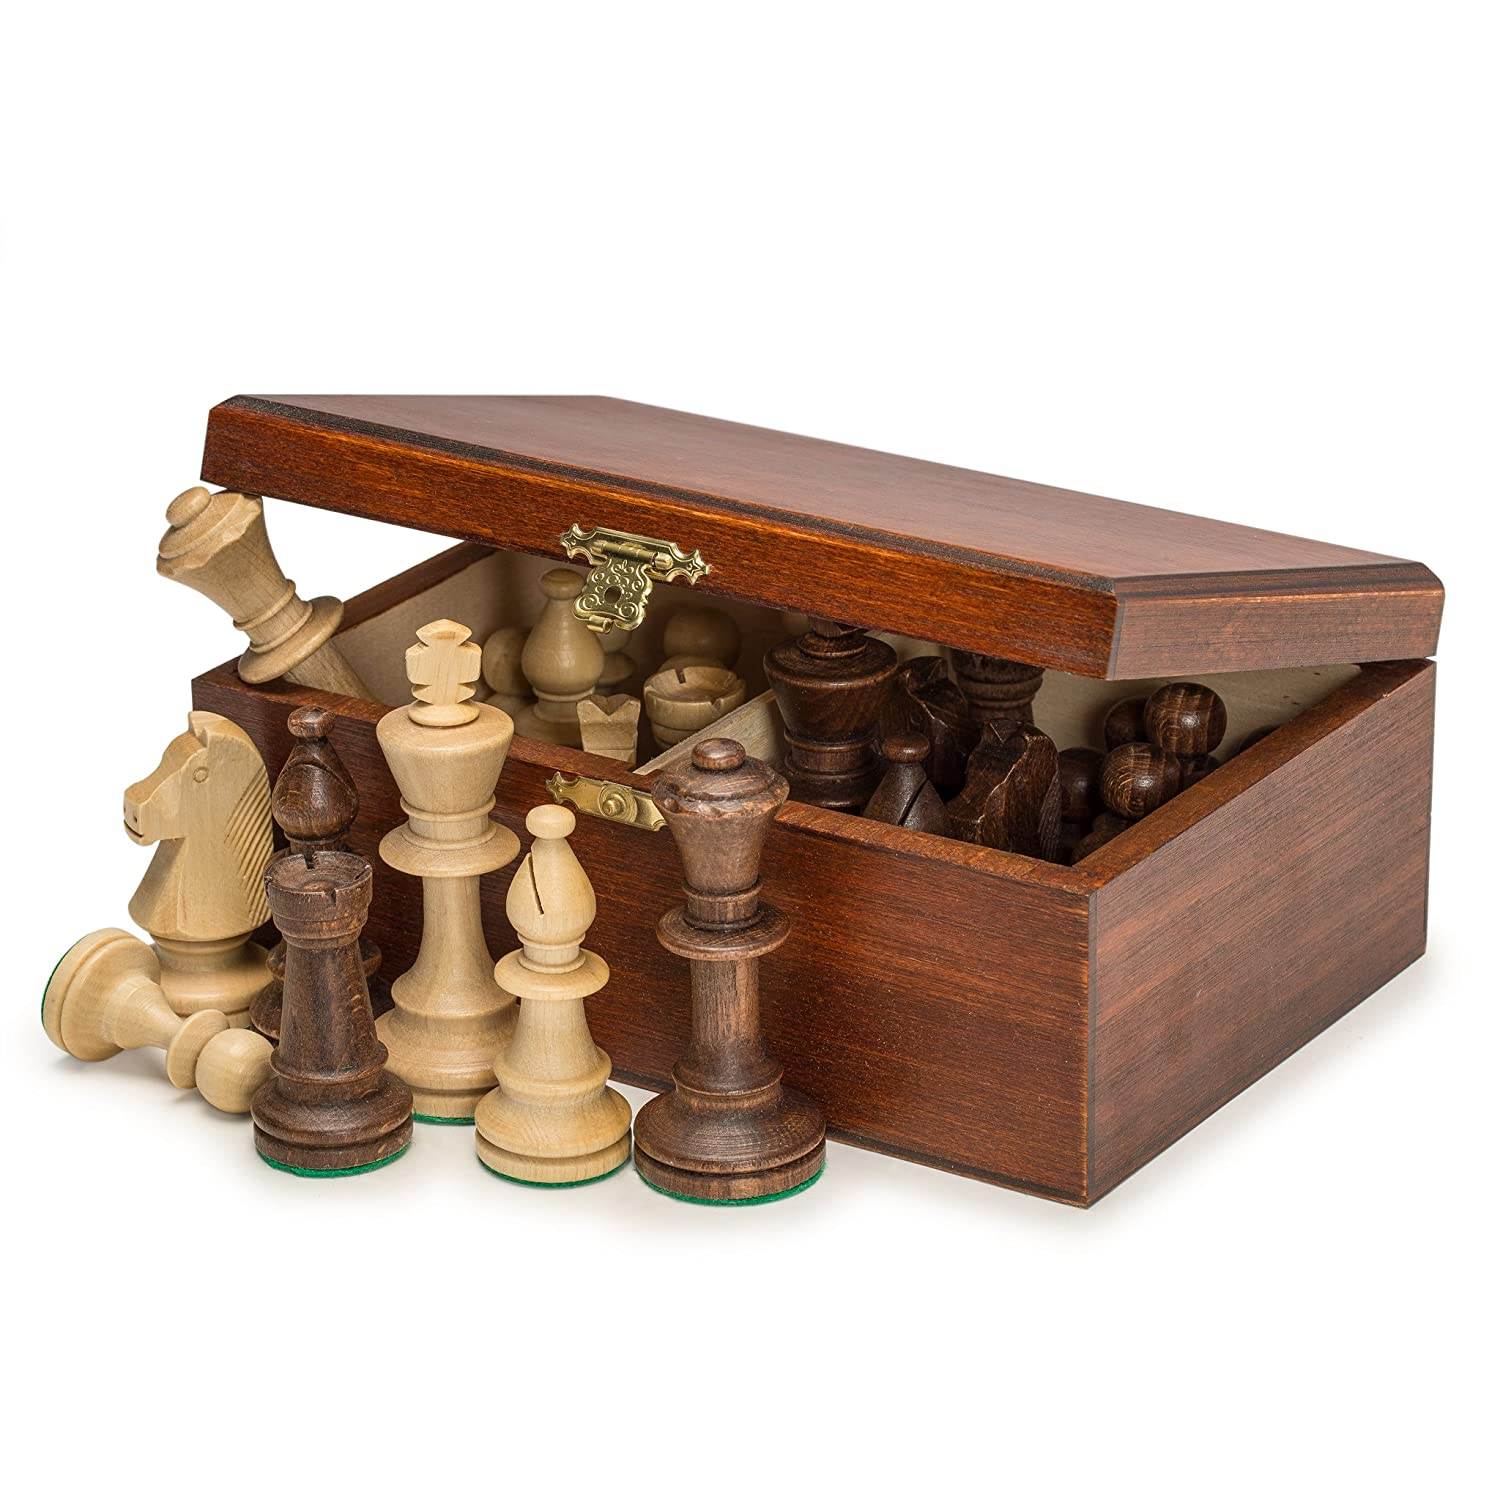 Staunton No. 5 Tournament Chess Pieces w/ w/ w/ Wood Box by Wegiel 370c45